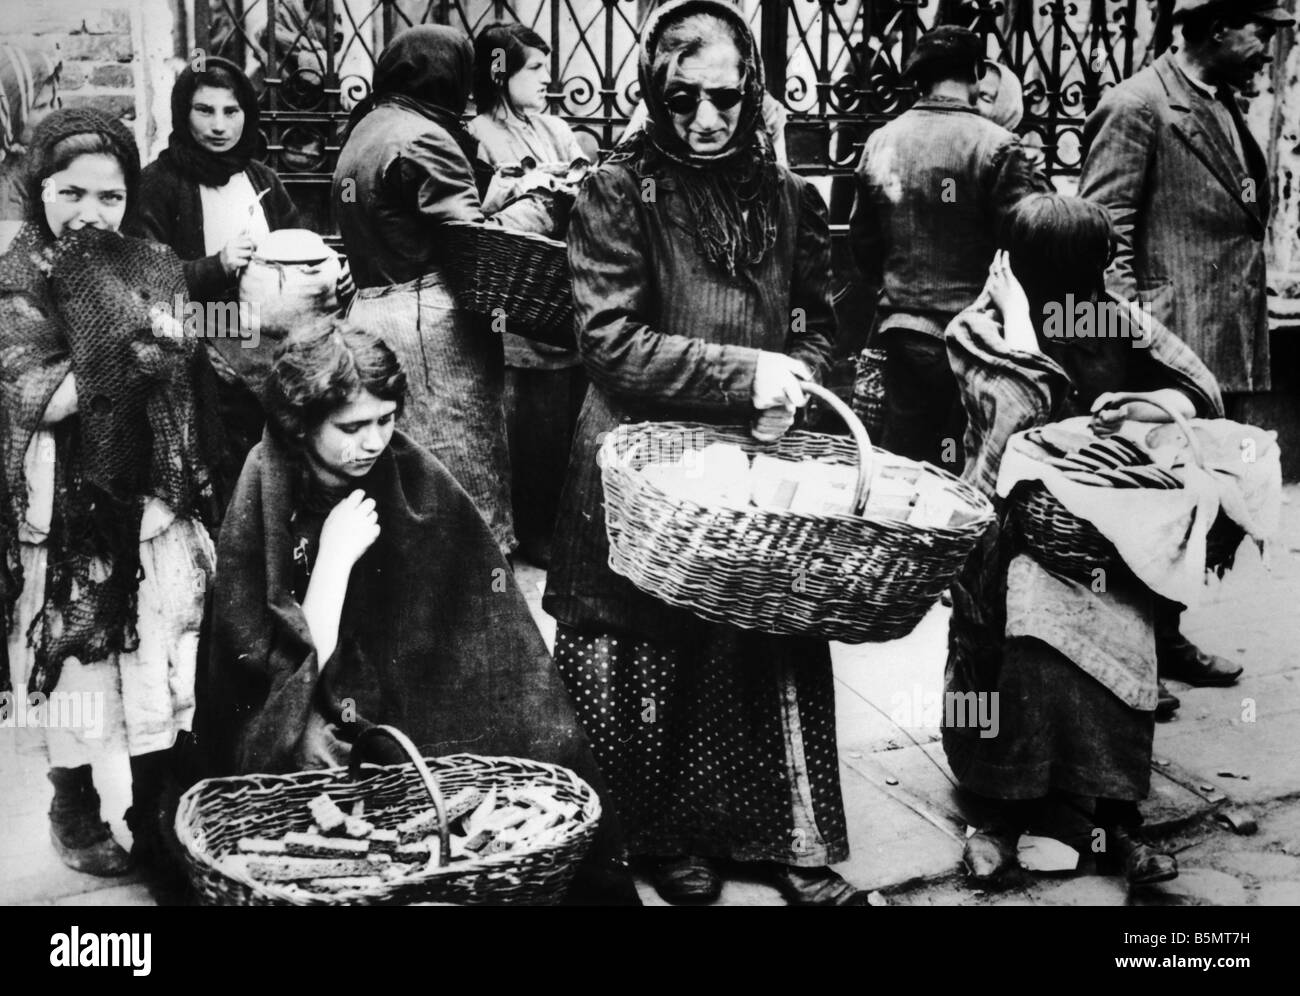 9IS 1915 0 0 A1 37 Jewish saleswomen Vilnius 1915 History of Judaism Eastern Jews Jewish saleswomen in Vilnius Photo - Stock Image